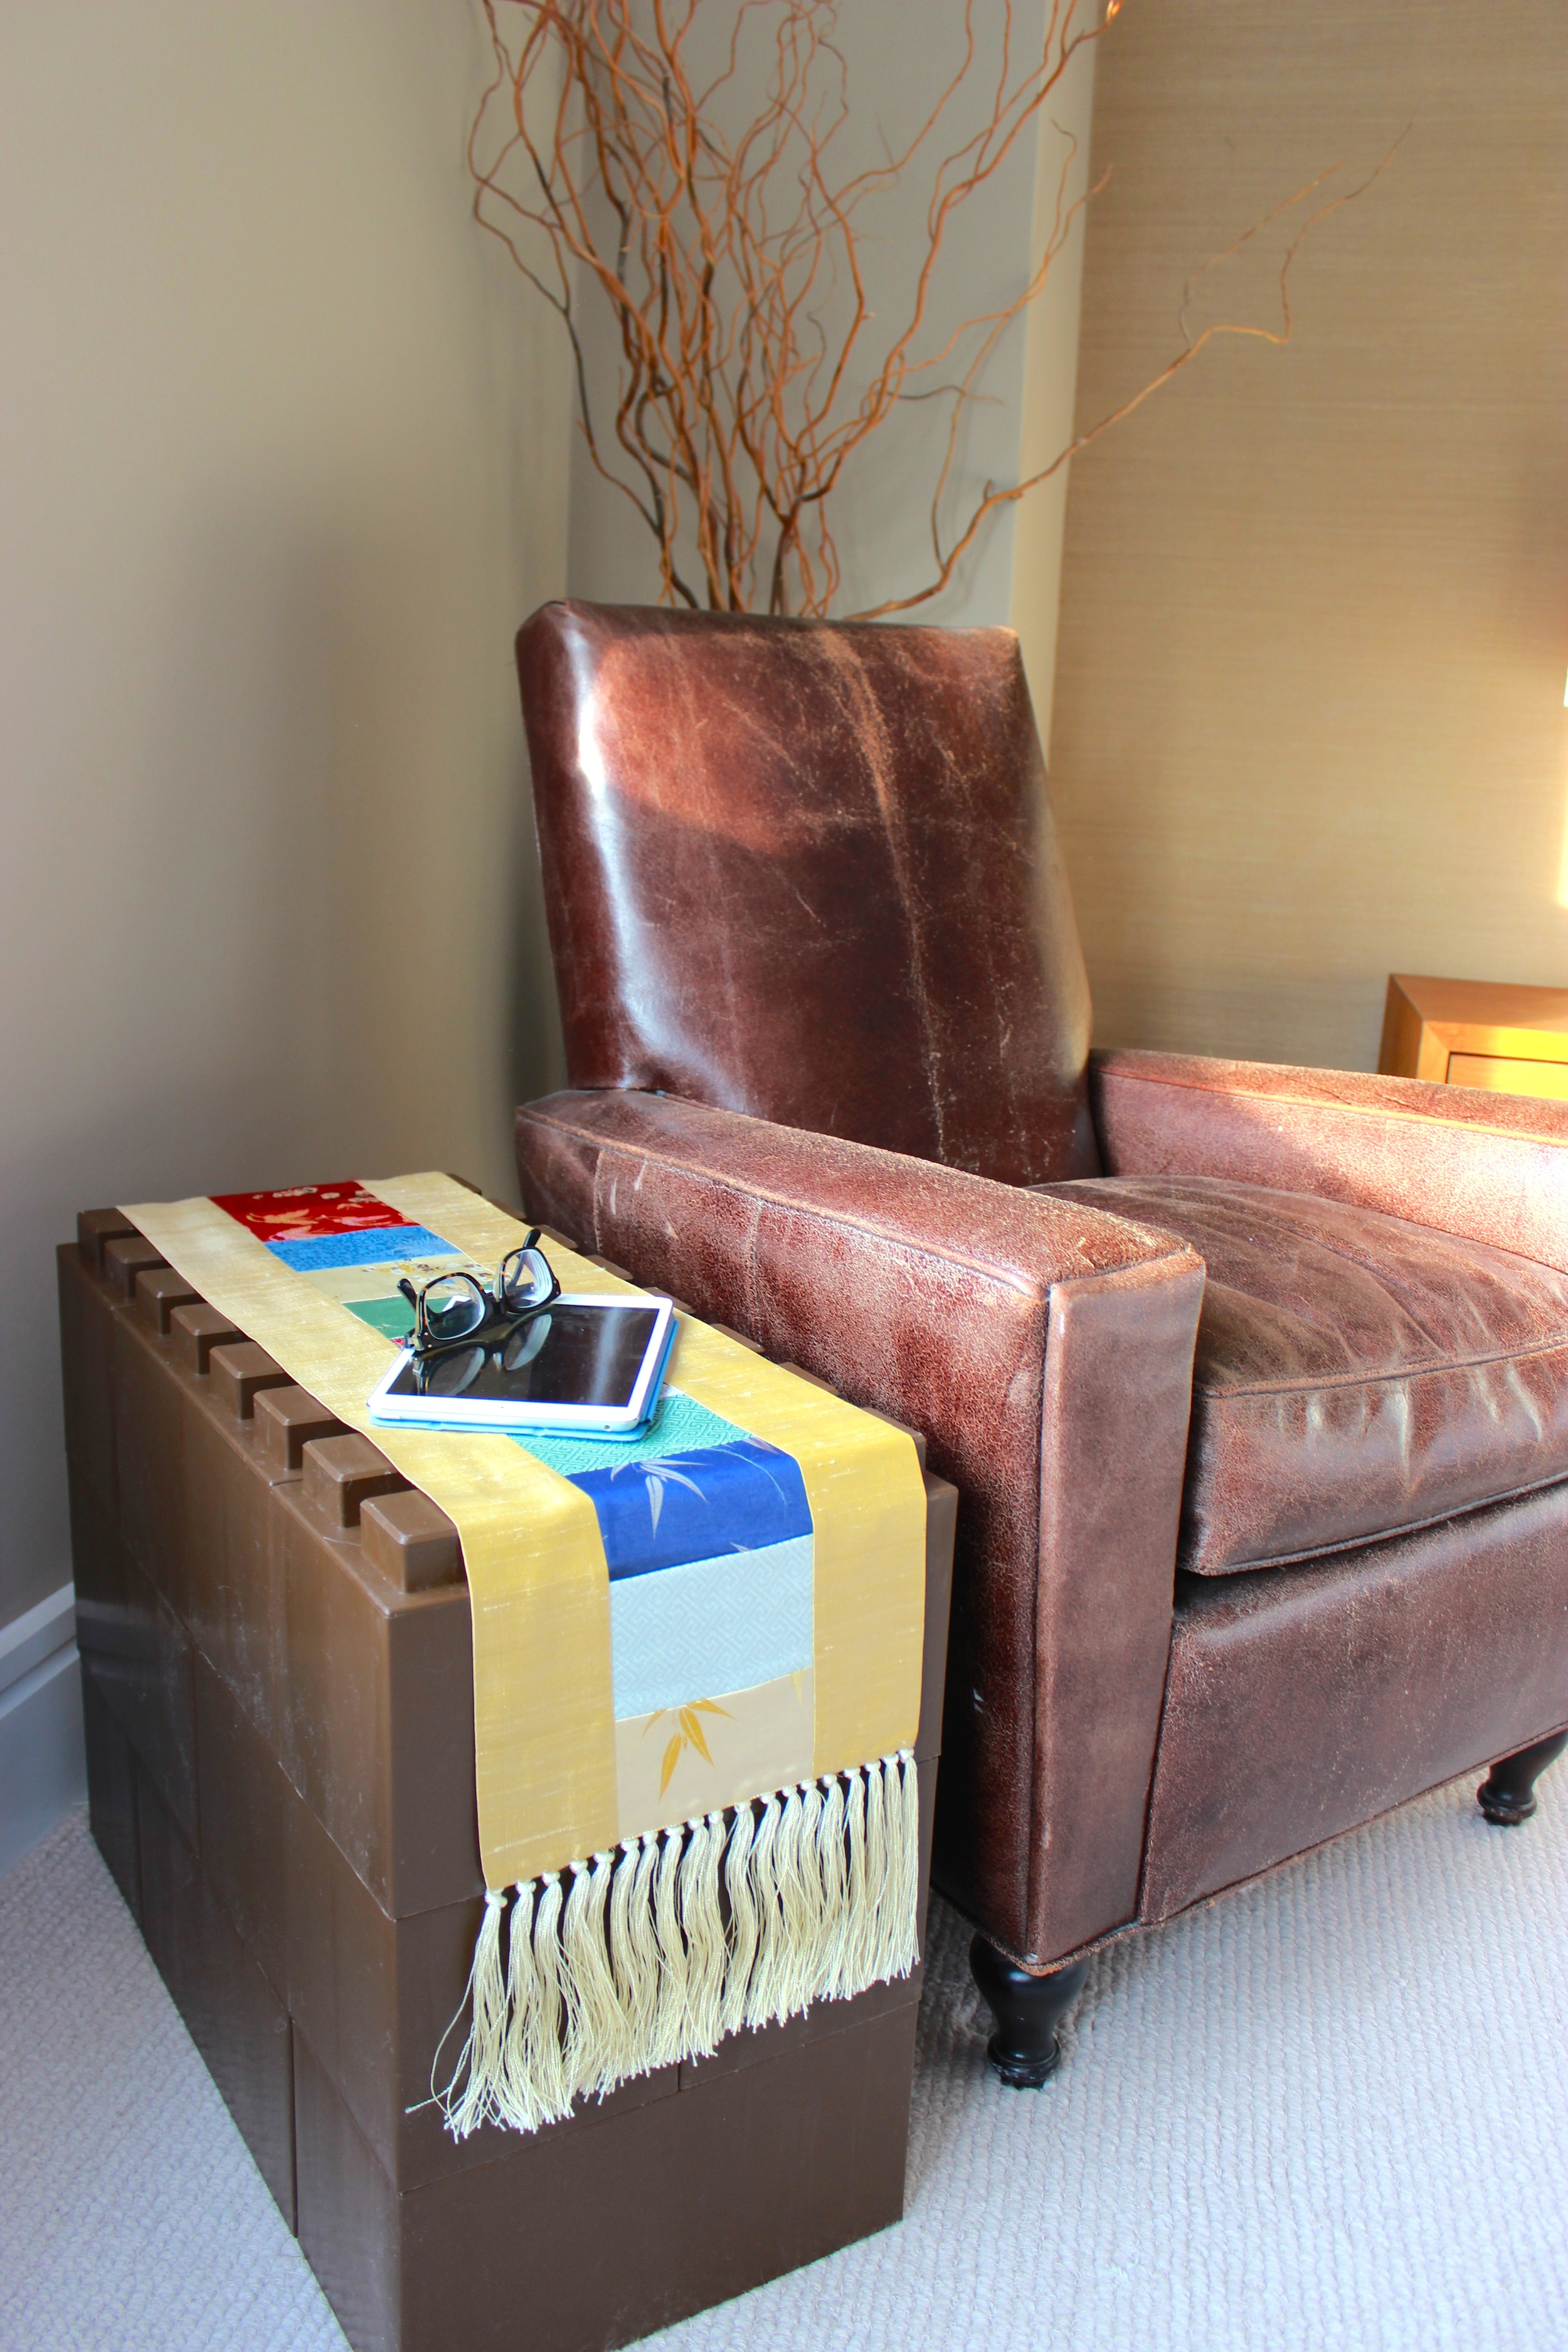 Use for modular side tables and end tables.